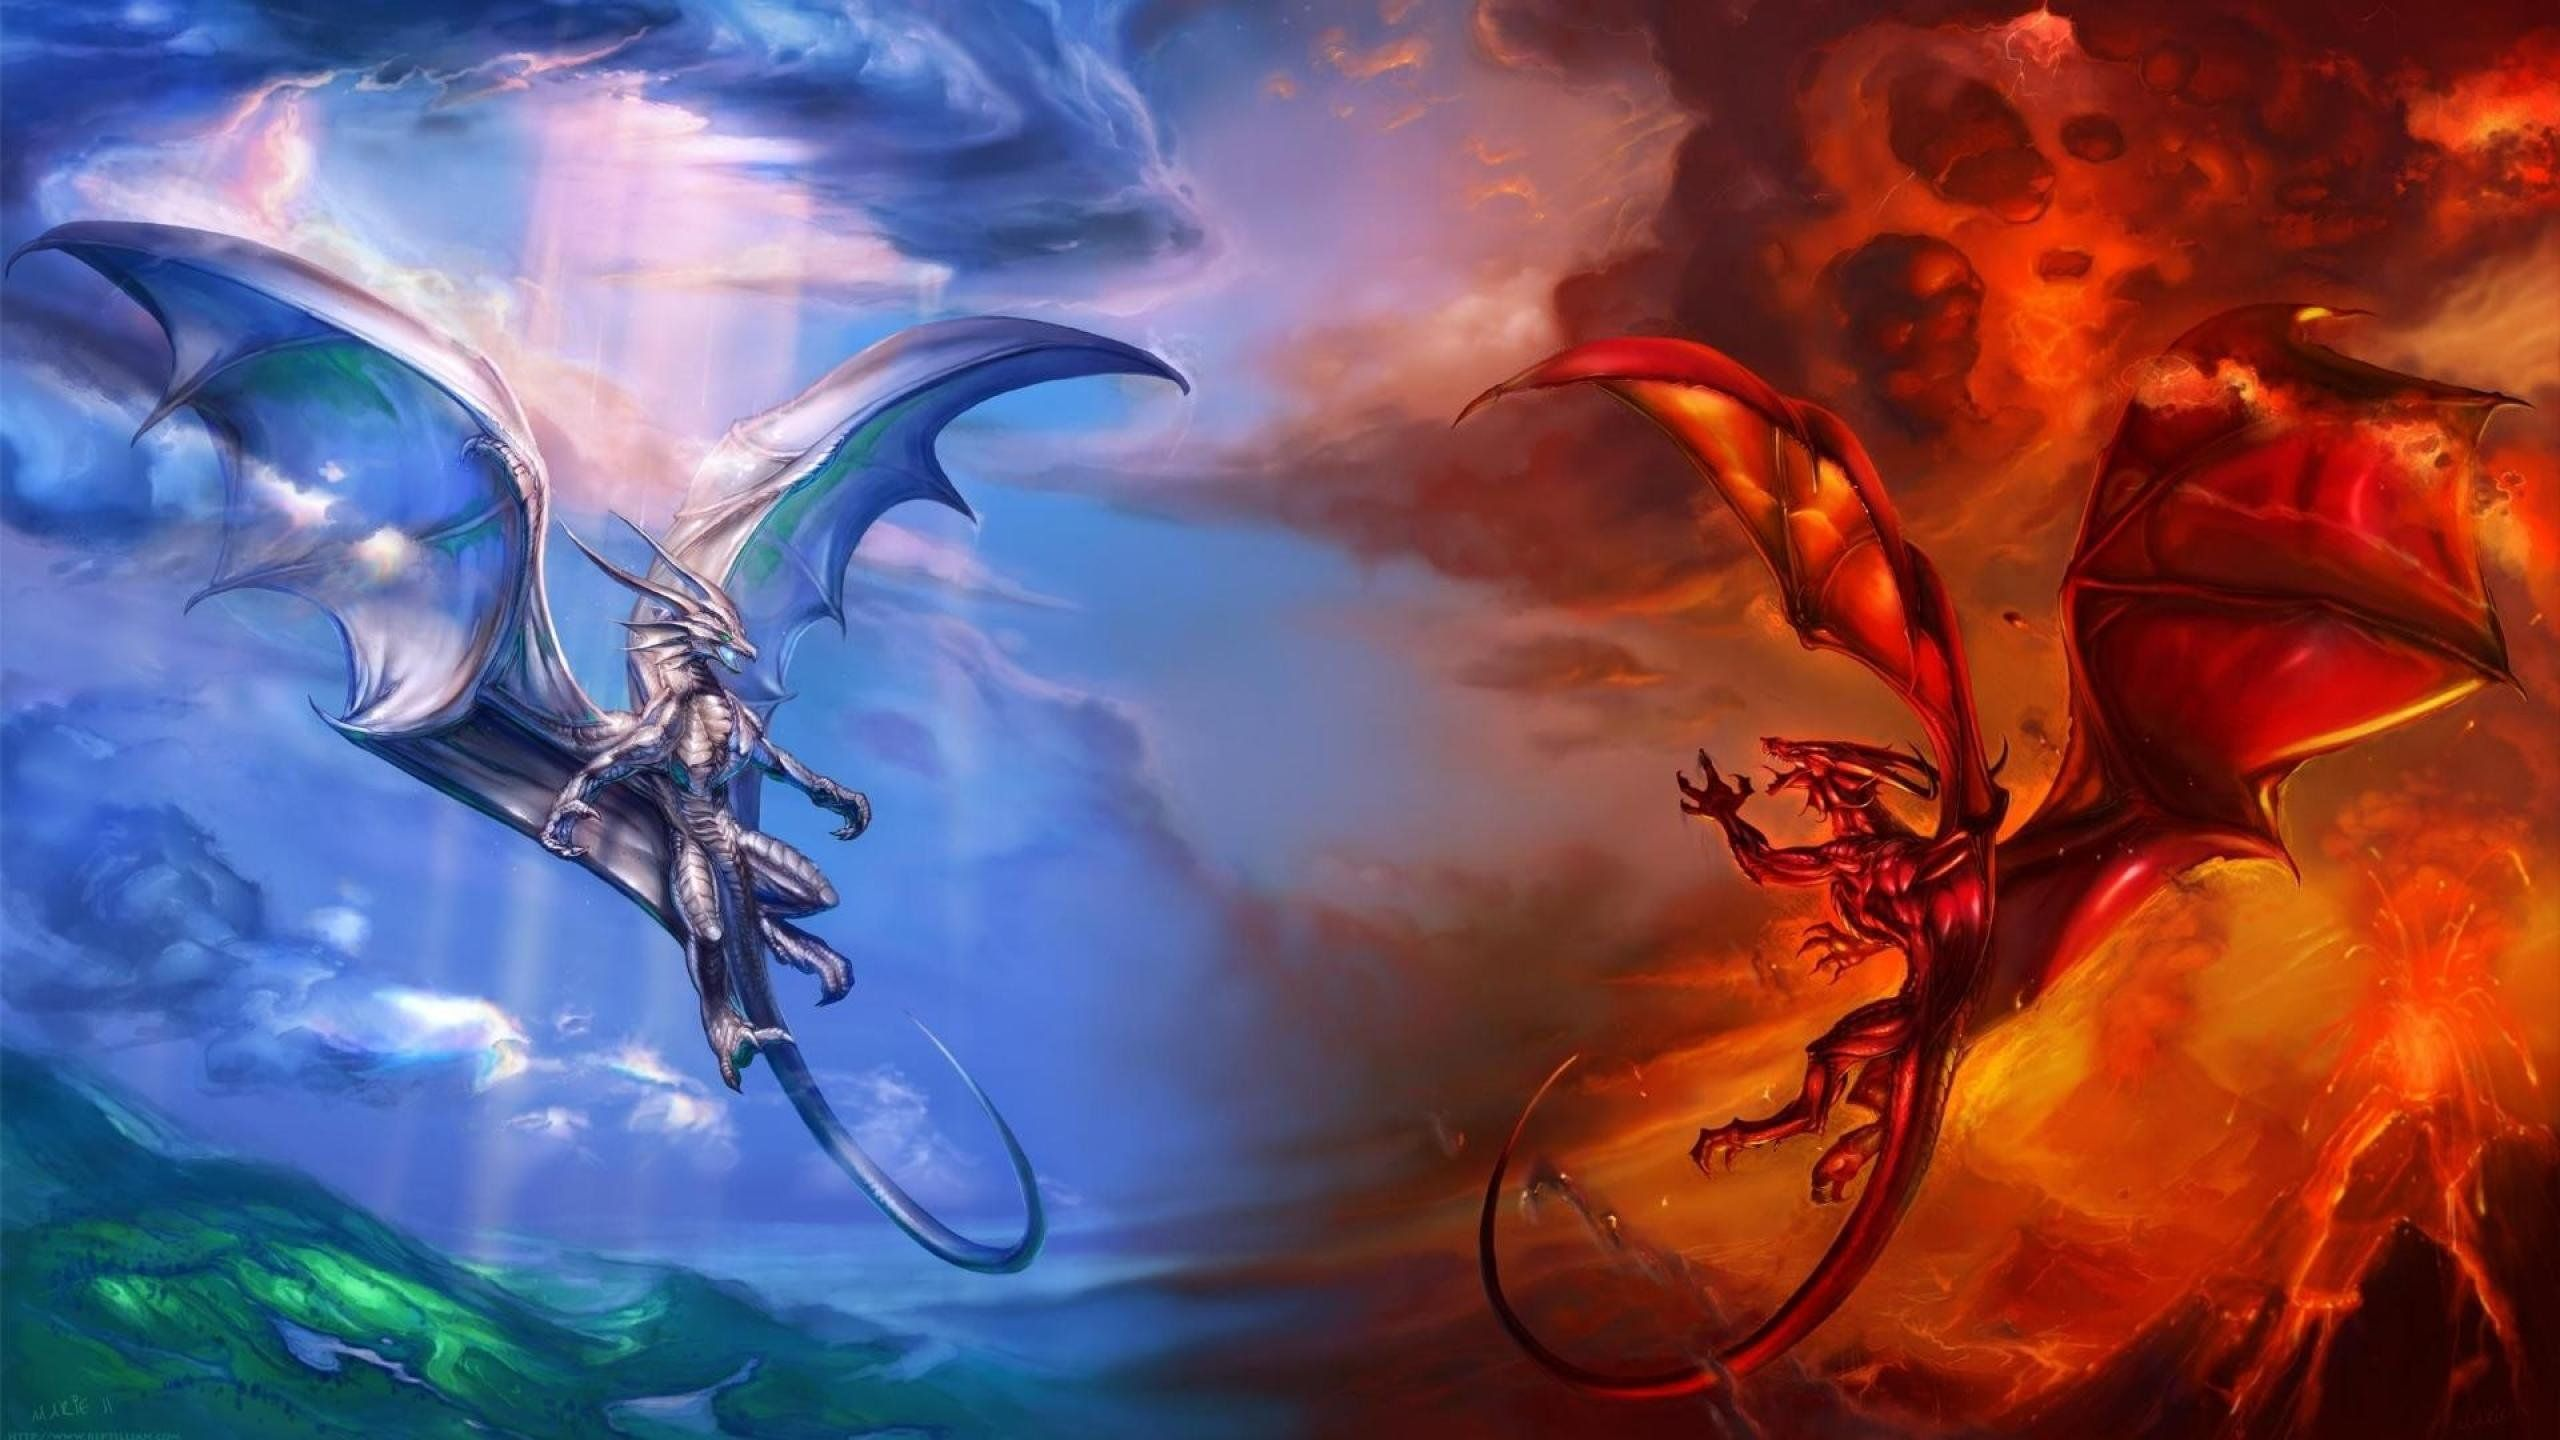 Ice Dragon HD Widescreen Wallpapers Amazing Wallpaperz